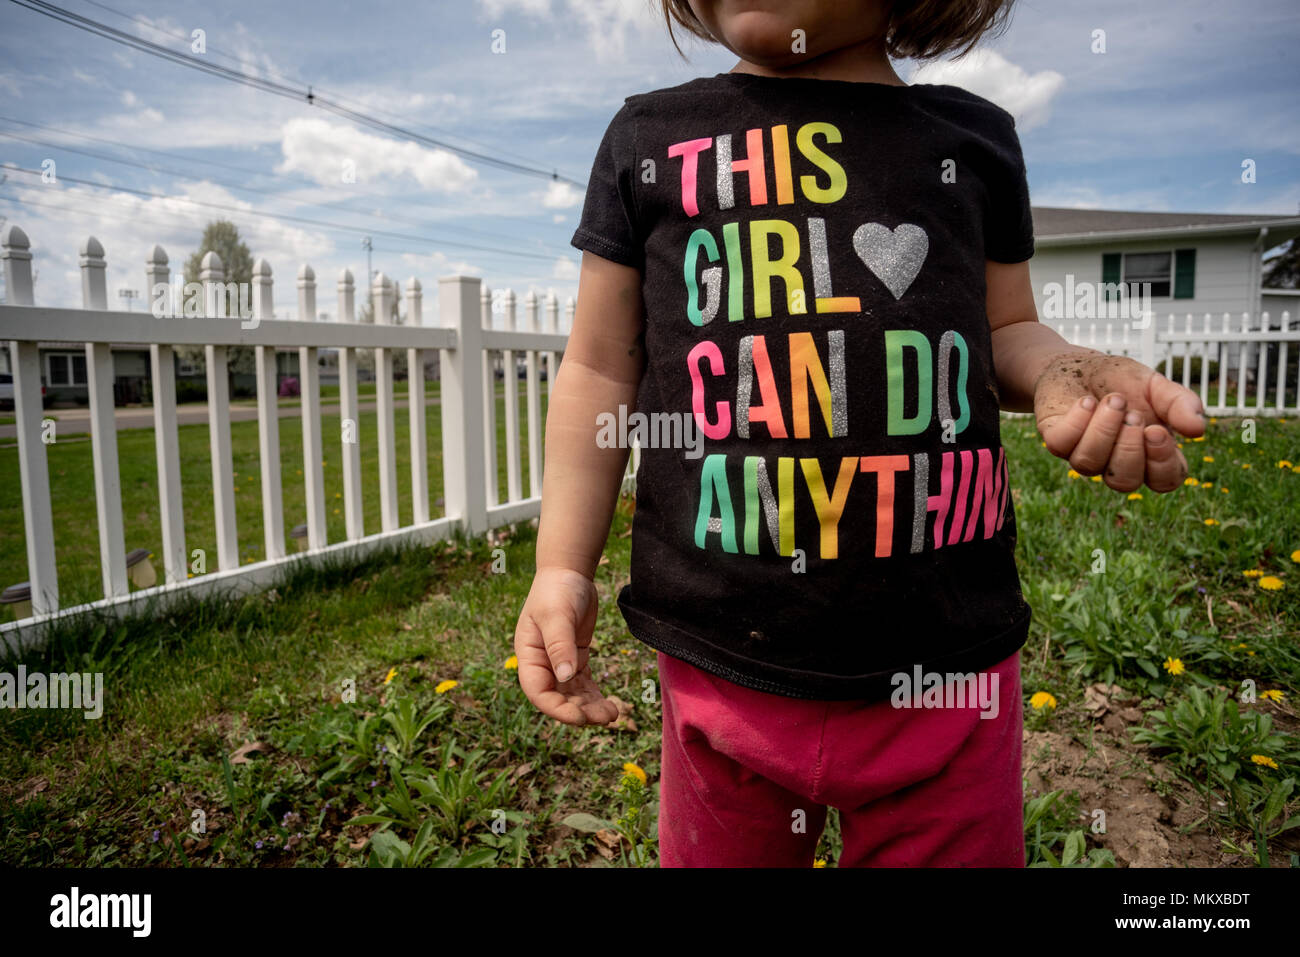 A little girl, without her face showing, wearing a Tshirt standing in a garden with a white fence behind her. - Stock Image